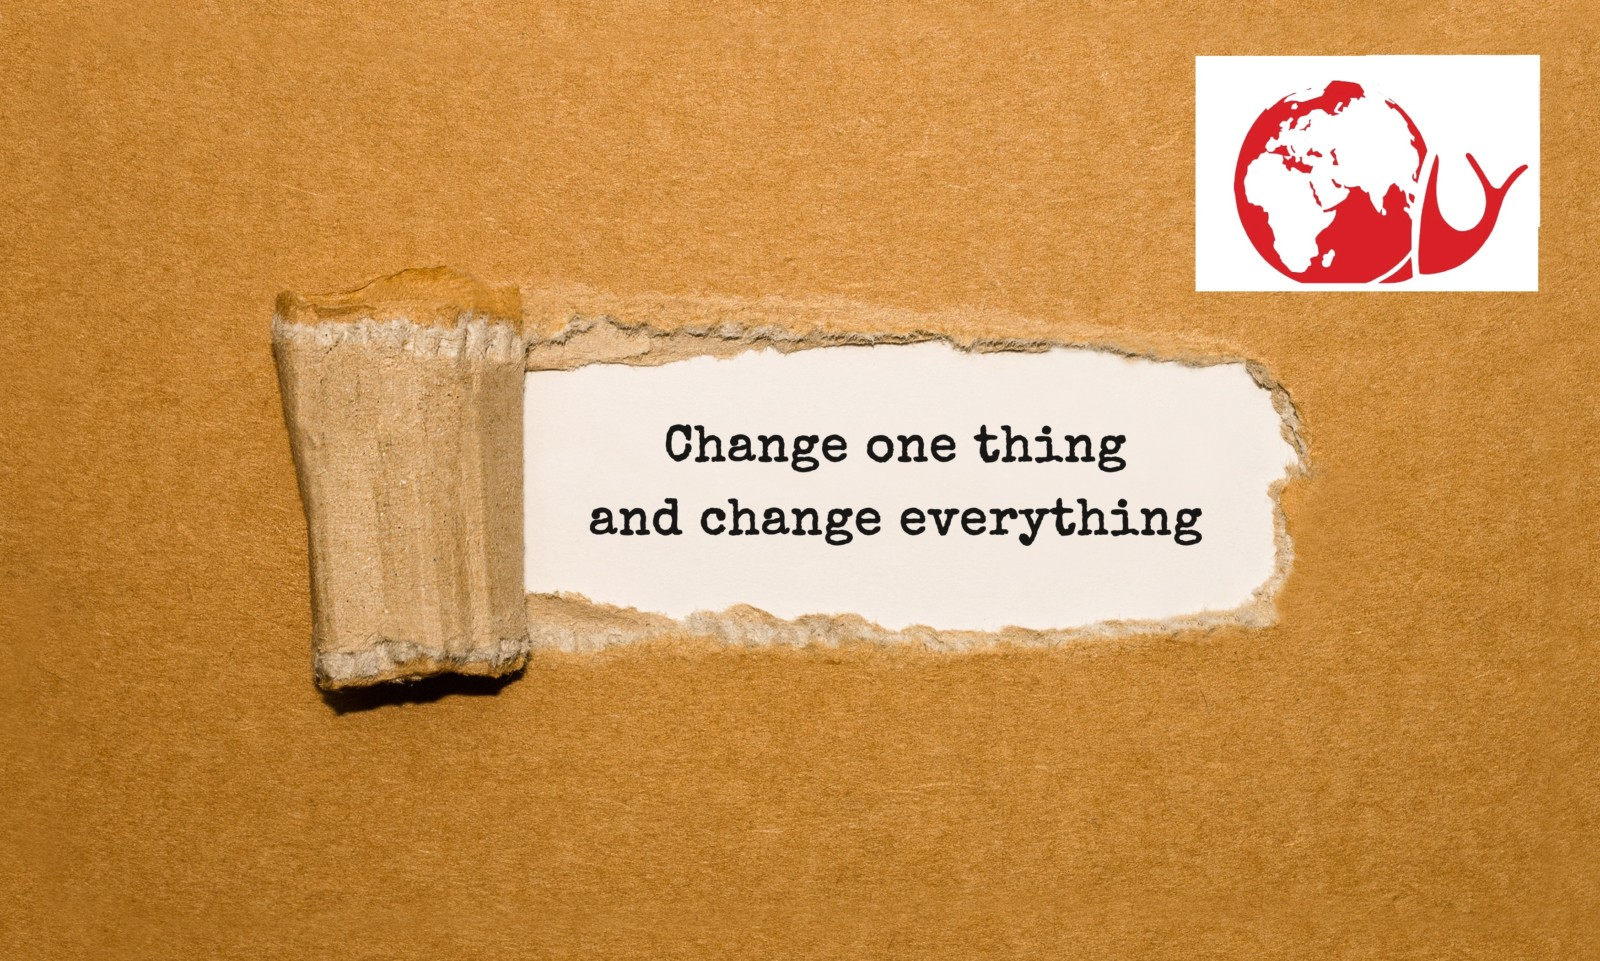 Change one thing - 1